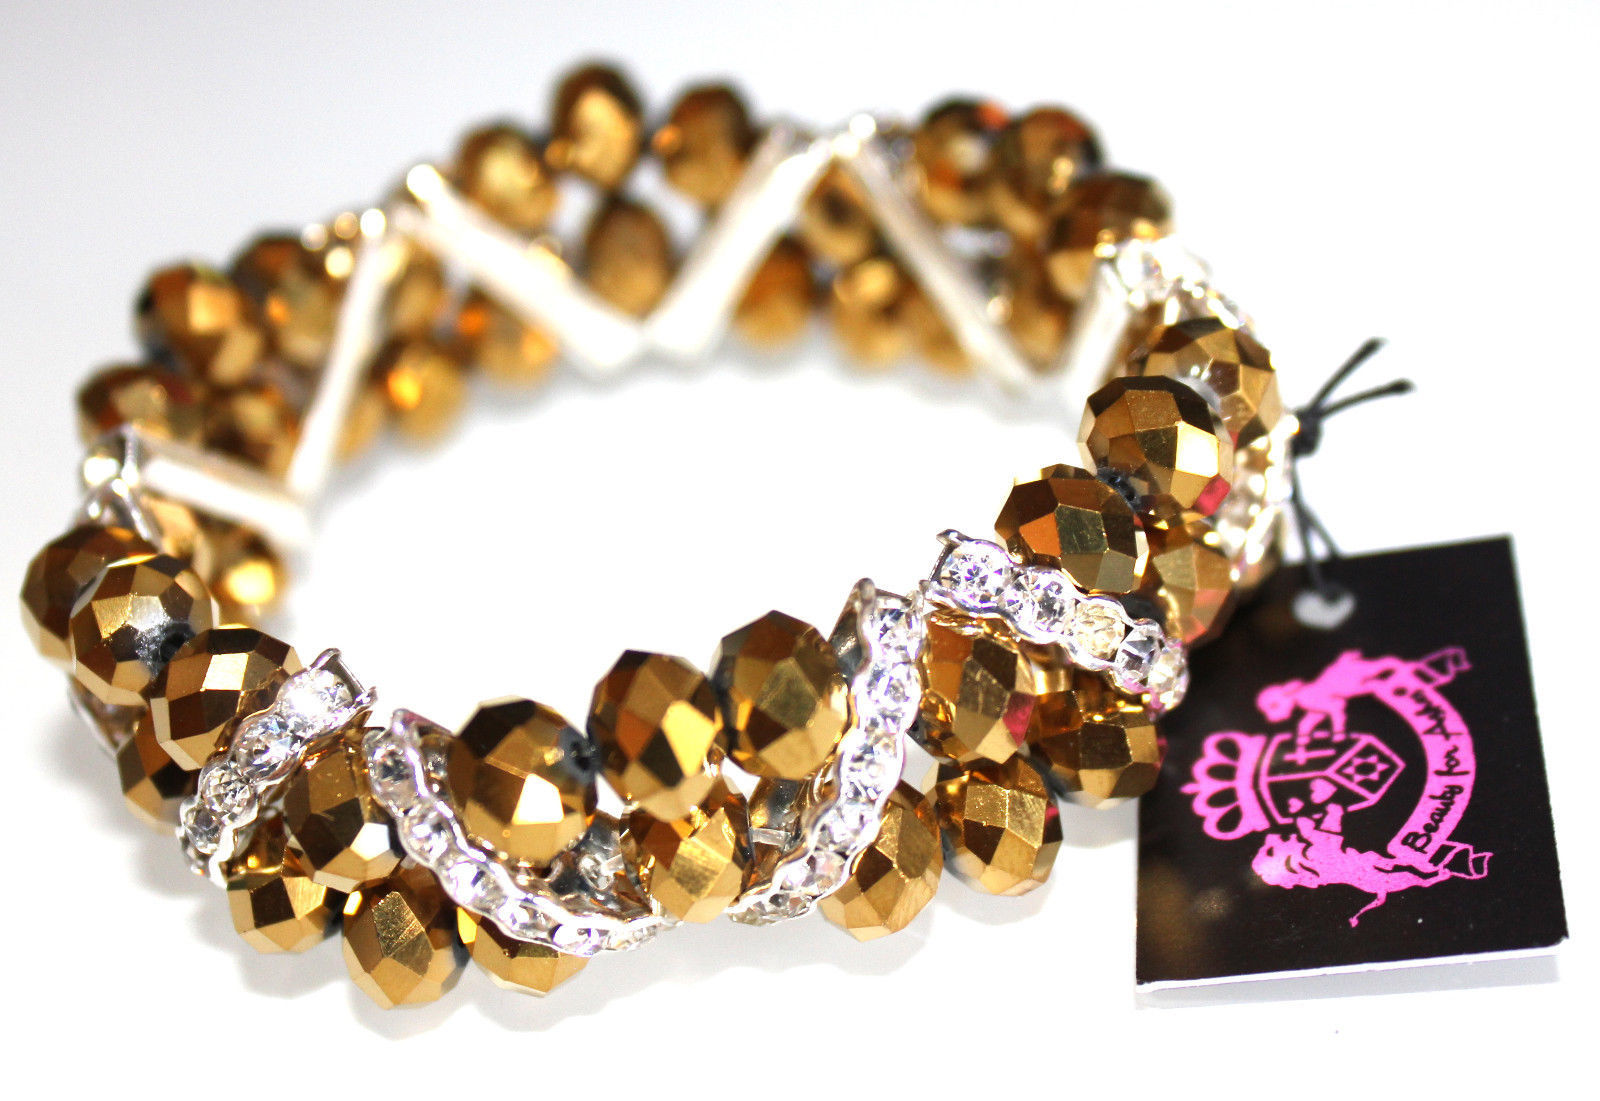 Primary image for Glimmering Sparkly Dressy Bronze Facted Crystal Gold Silver Stretch Bracelet